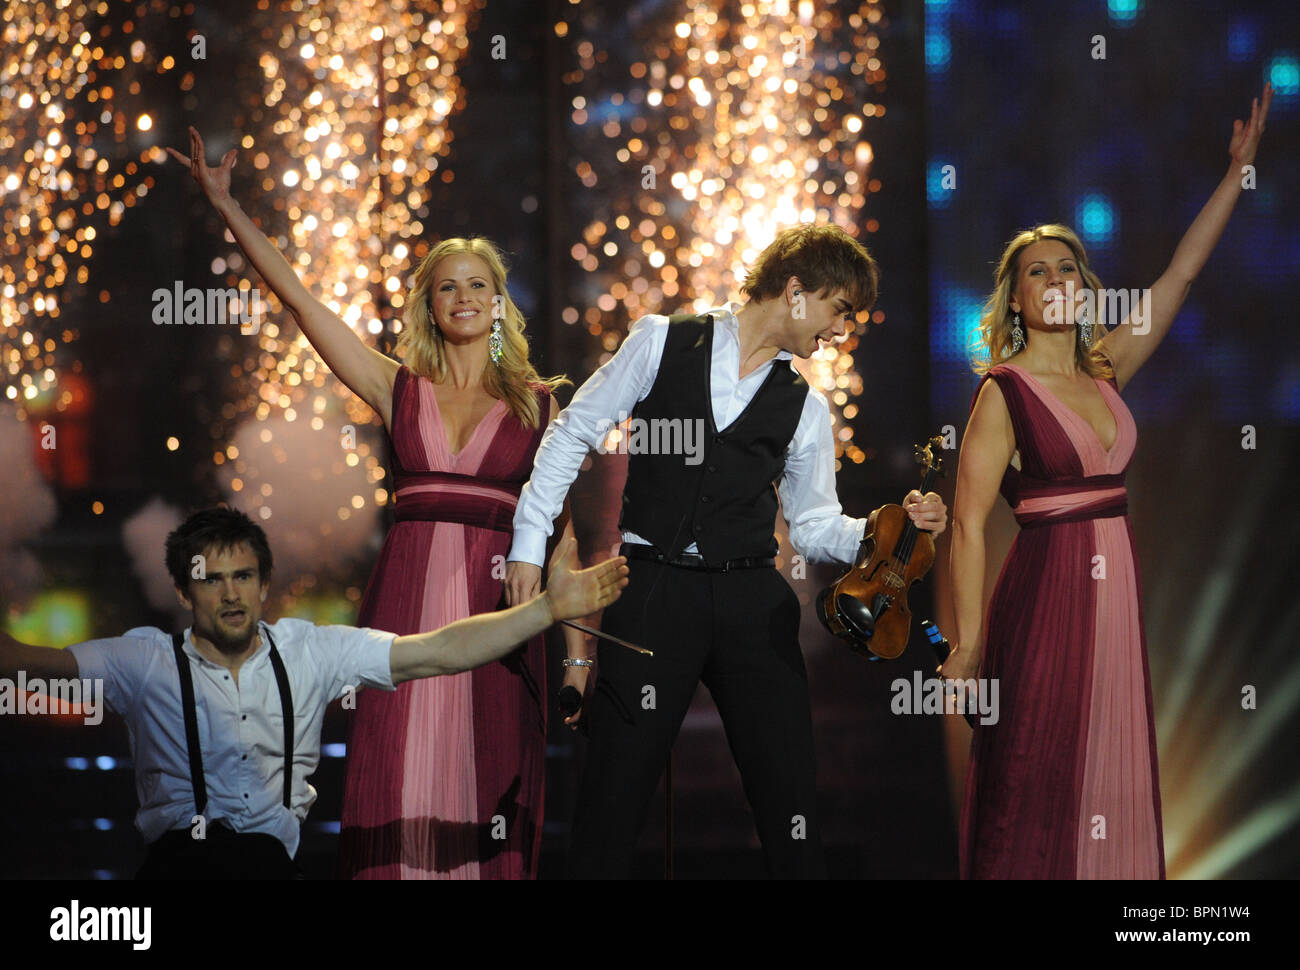 Eurovision 2009 Final rehearsals - Stock Image